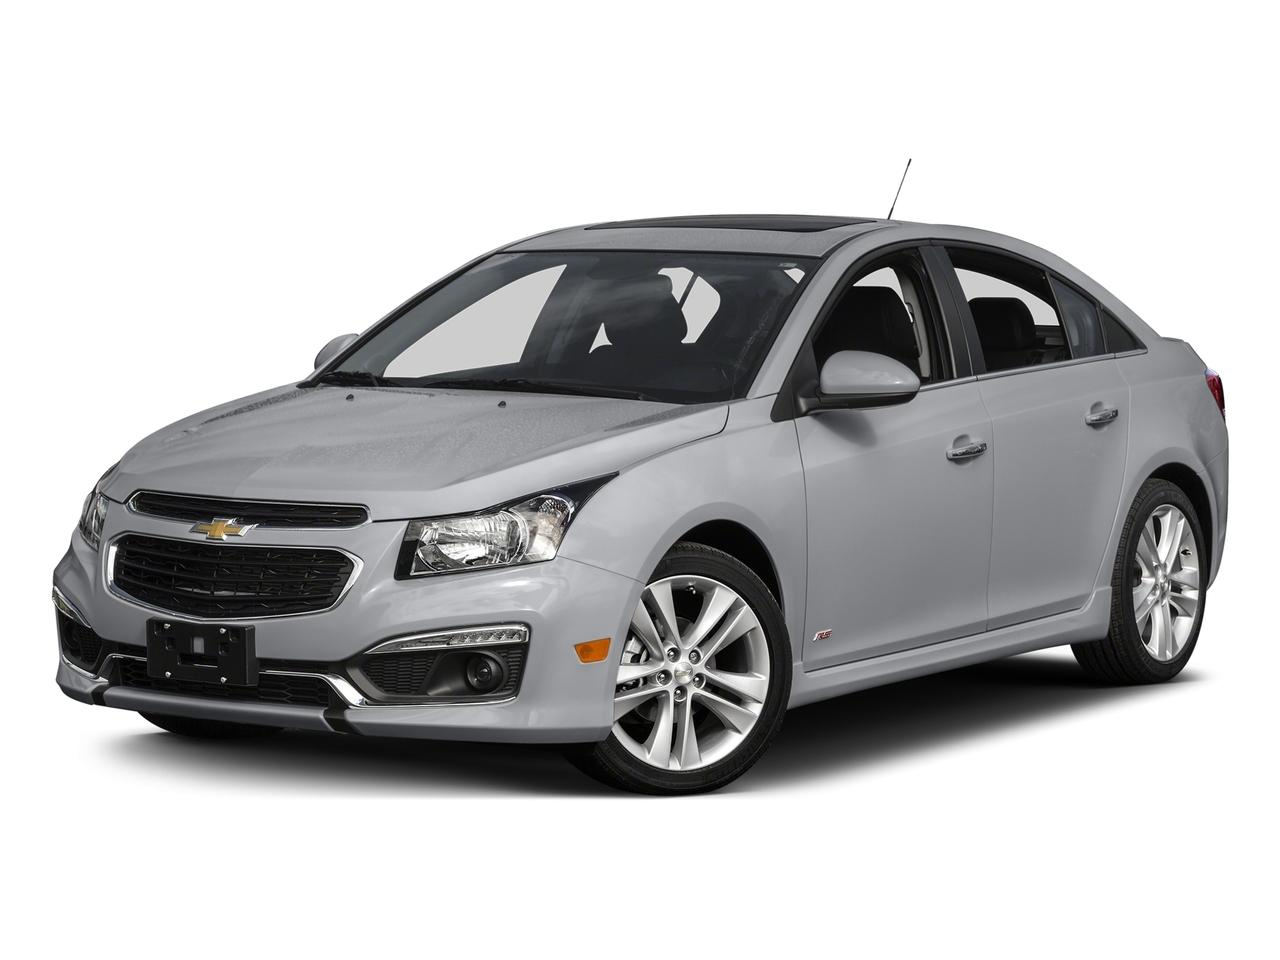 2015 Chevrolet Cruze Vehicle Photo in Akron, OH 44320